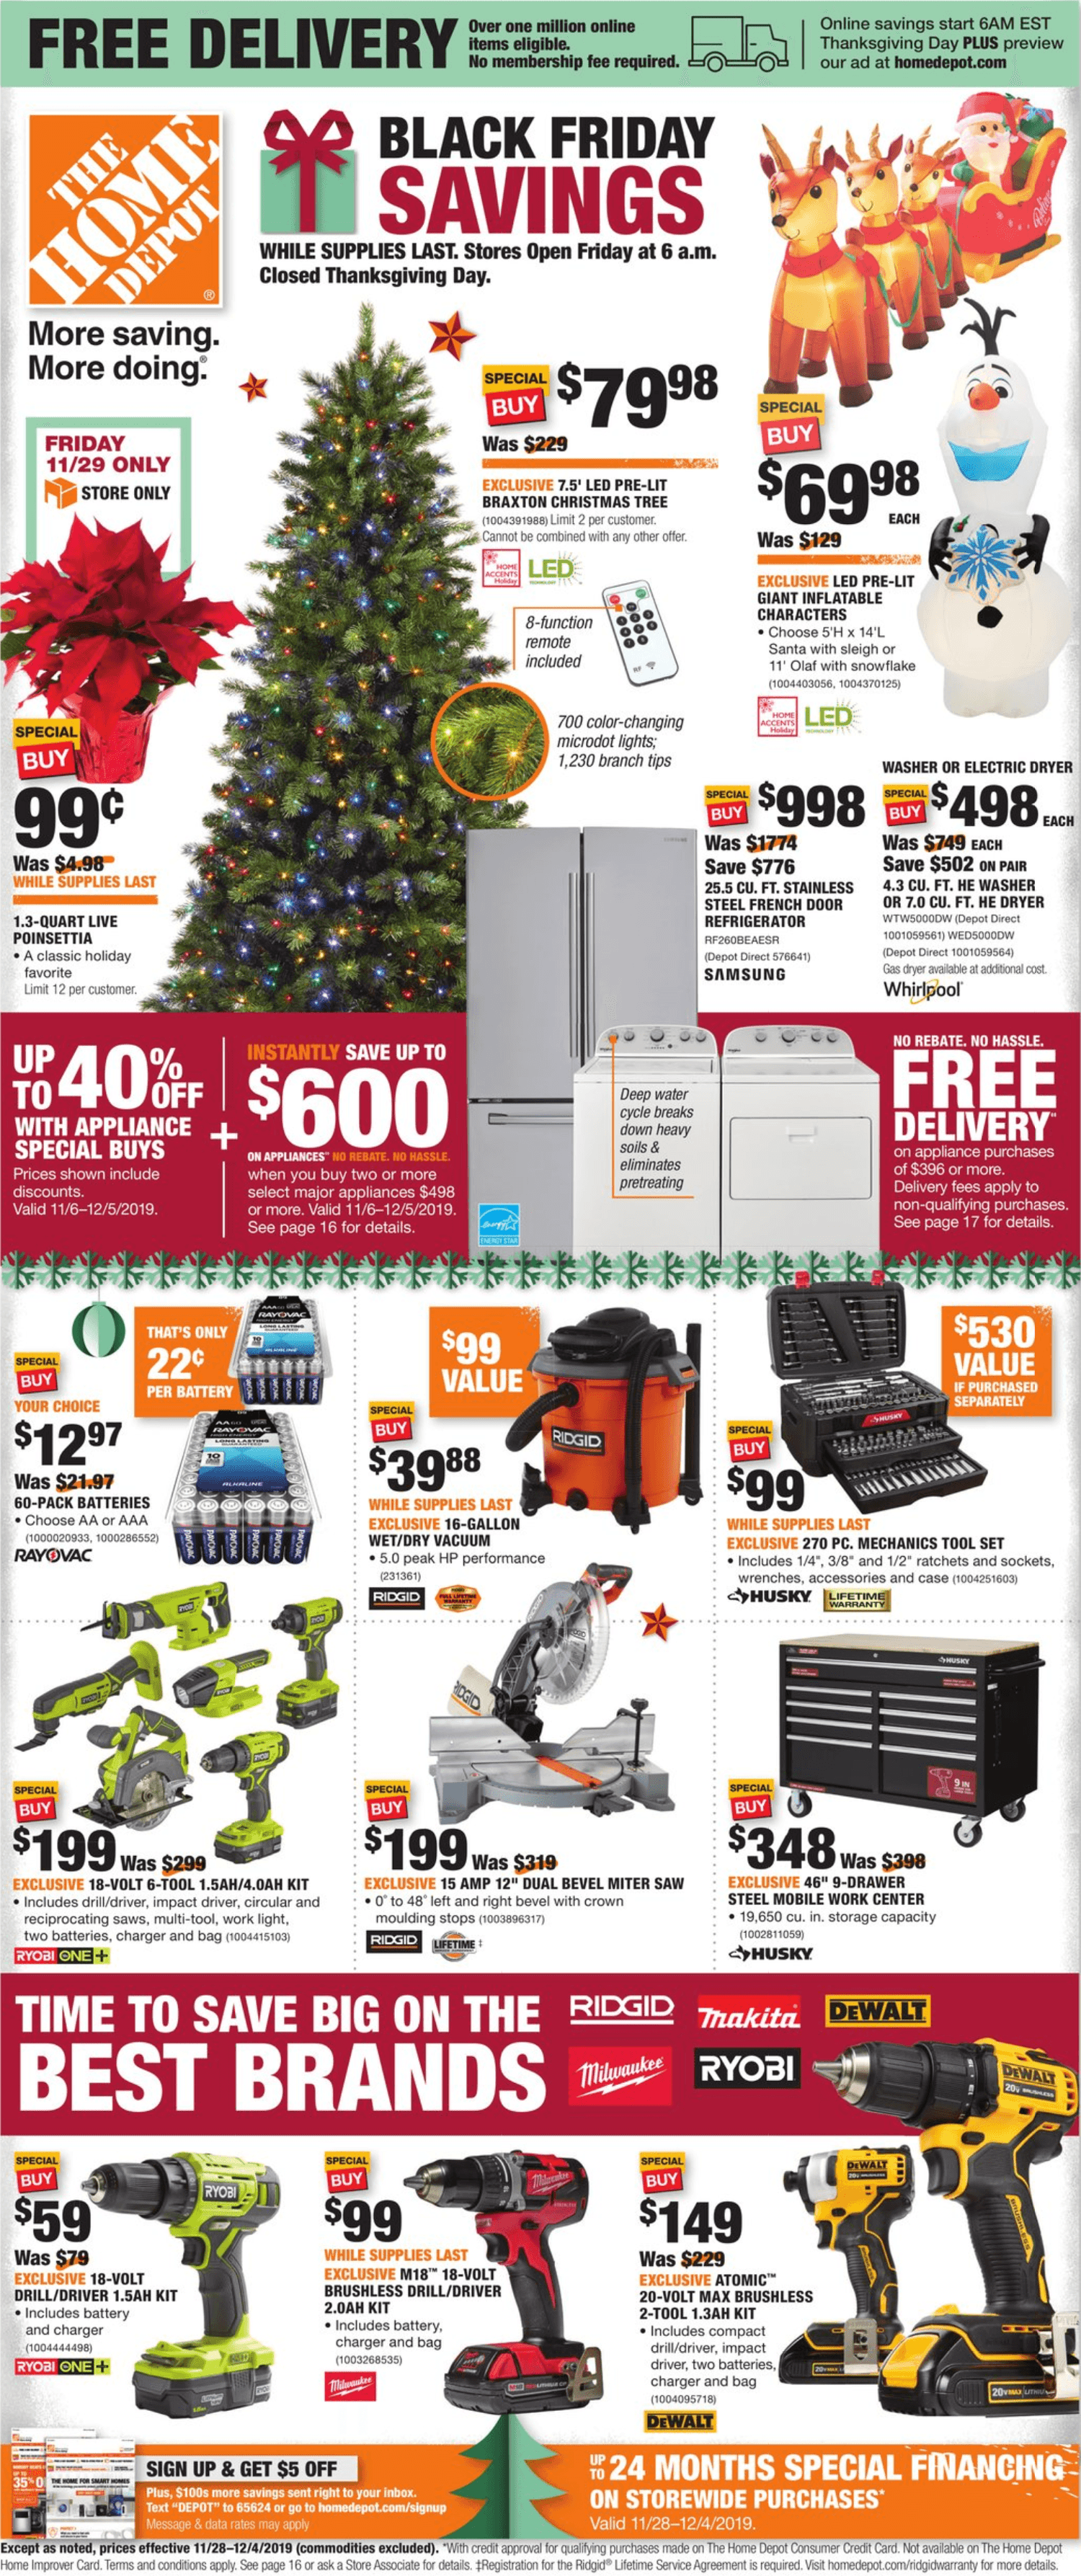 Home Depot Black Friday 2019 Page 1